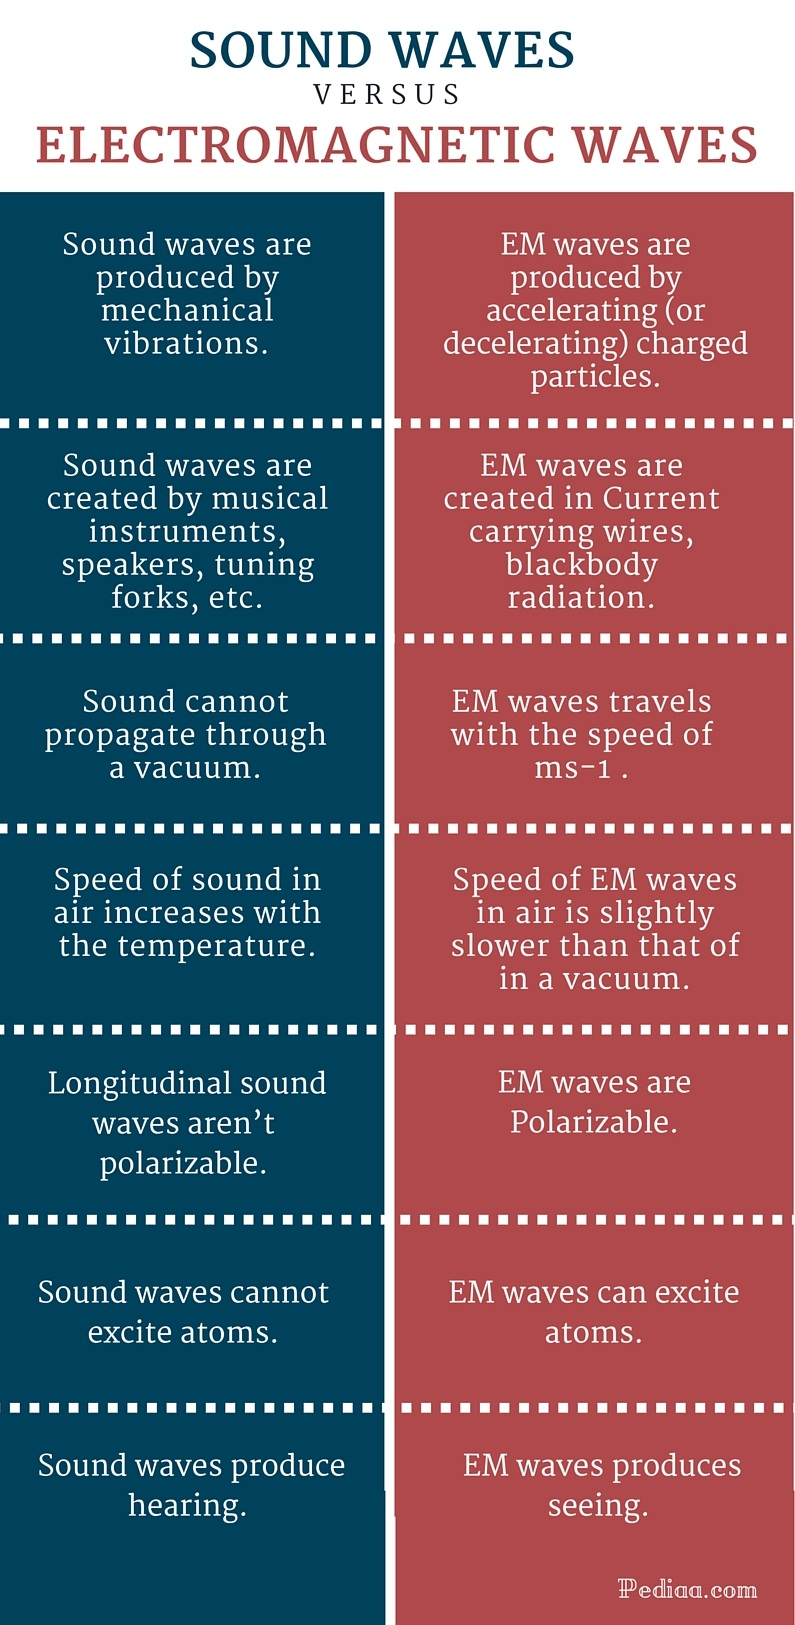 Sound Waves and Electromagnetic Waves differences